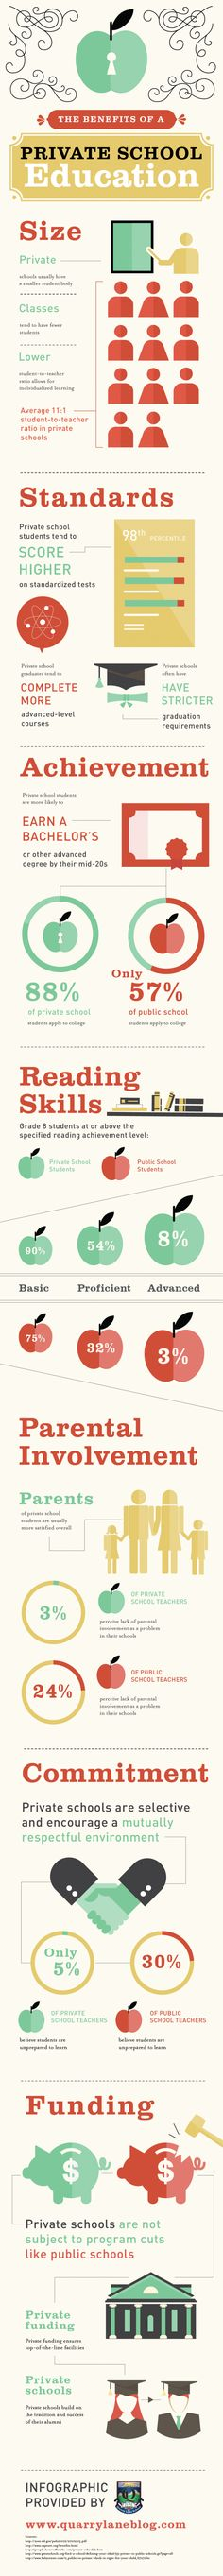 The Benefits of a Private School Education Infographic | e-Learning Infographics